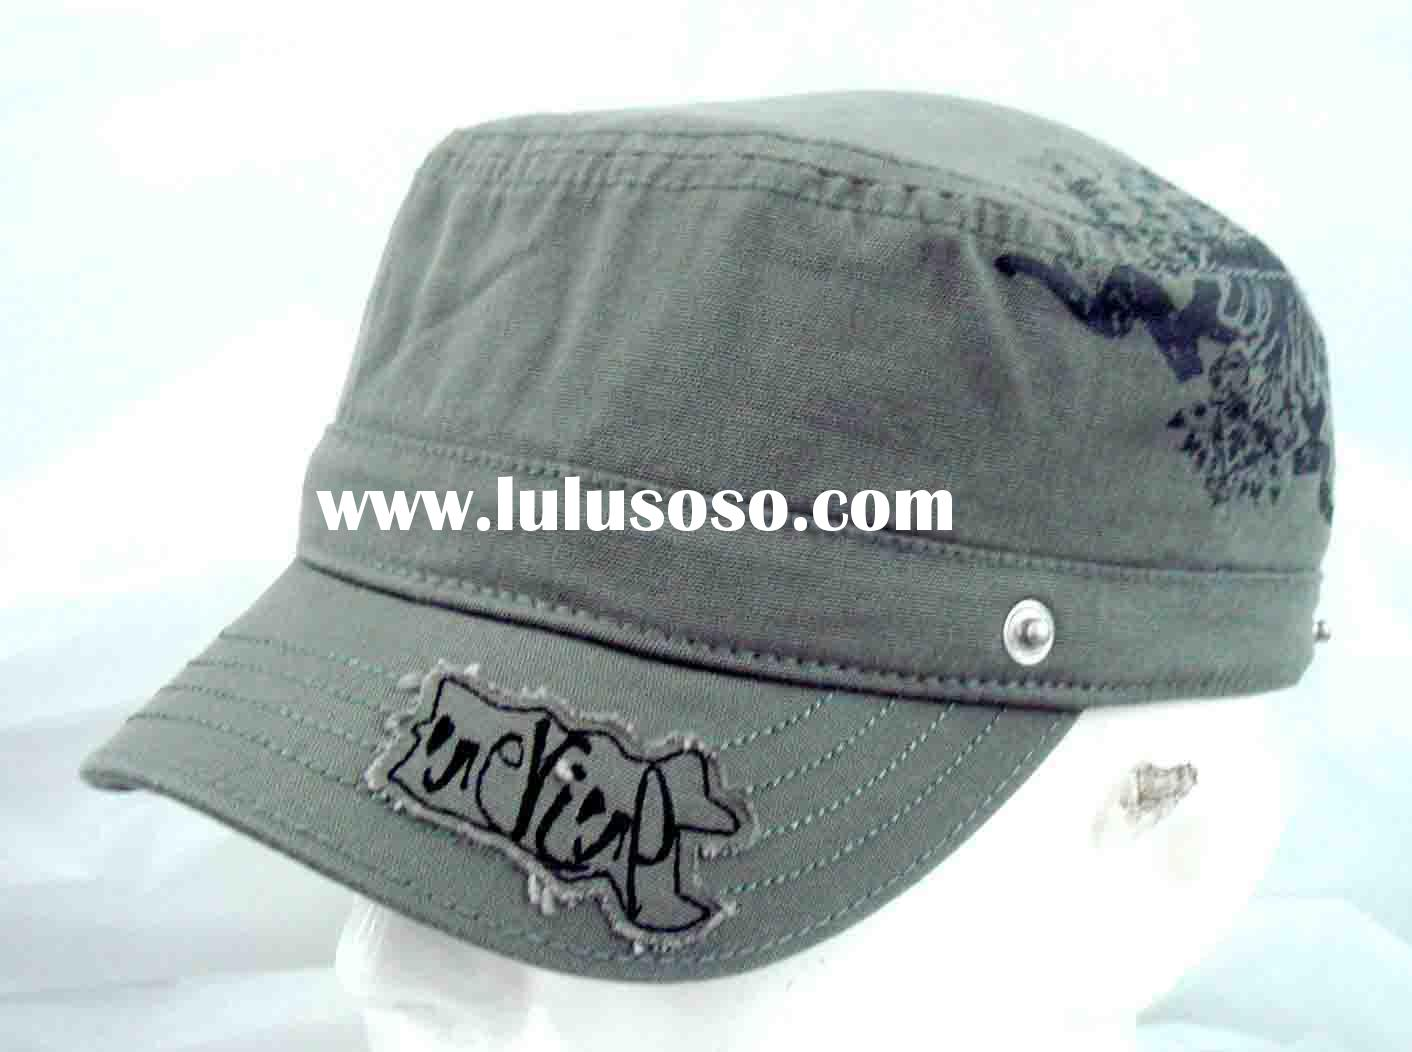 Army cap, military cap, fashion cap, promotional cap